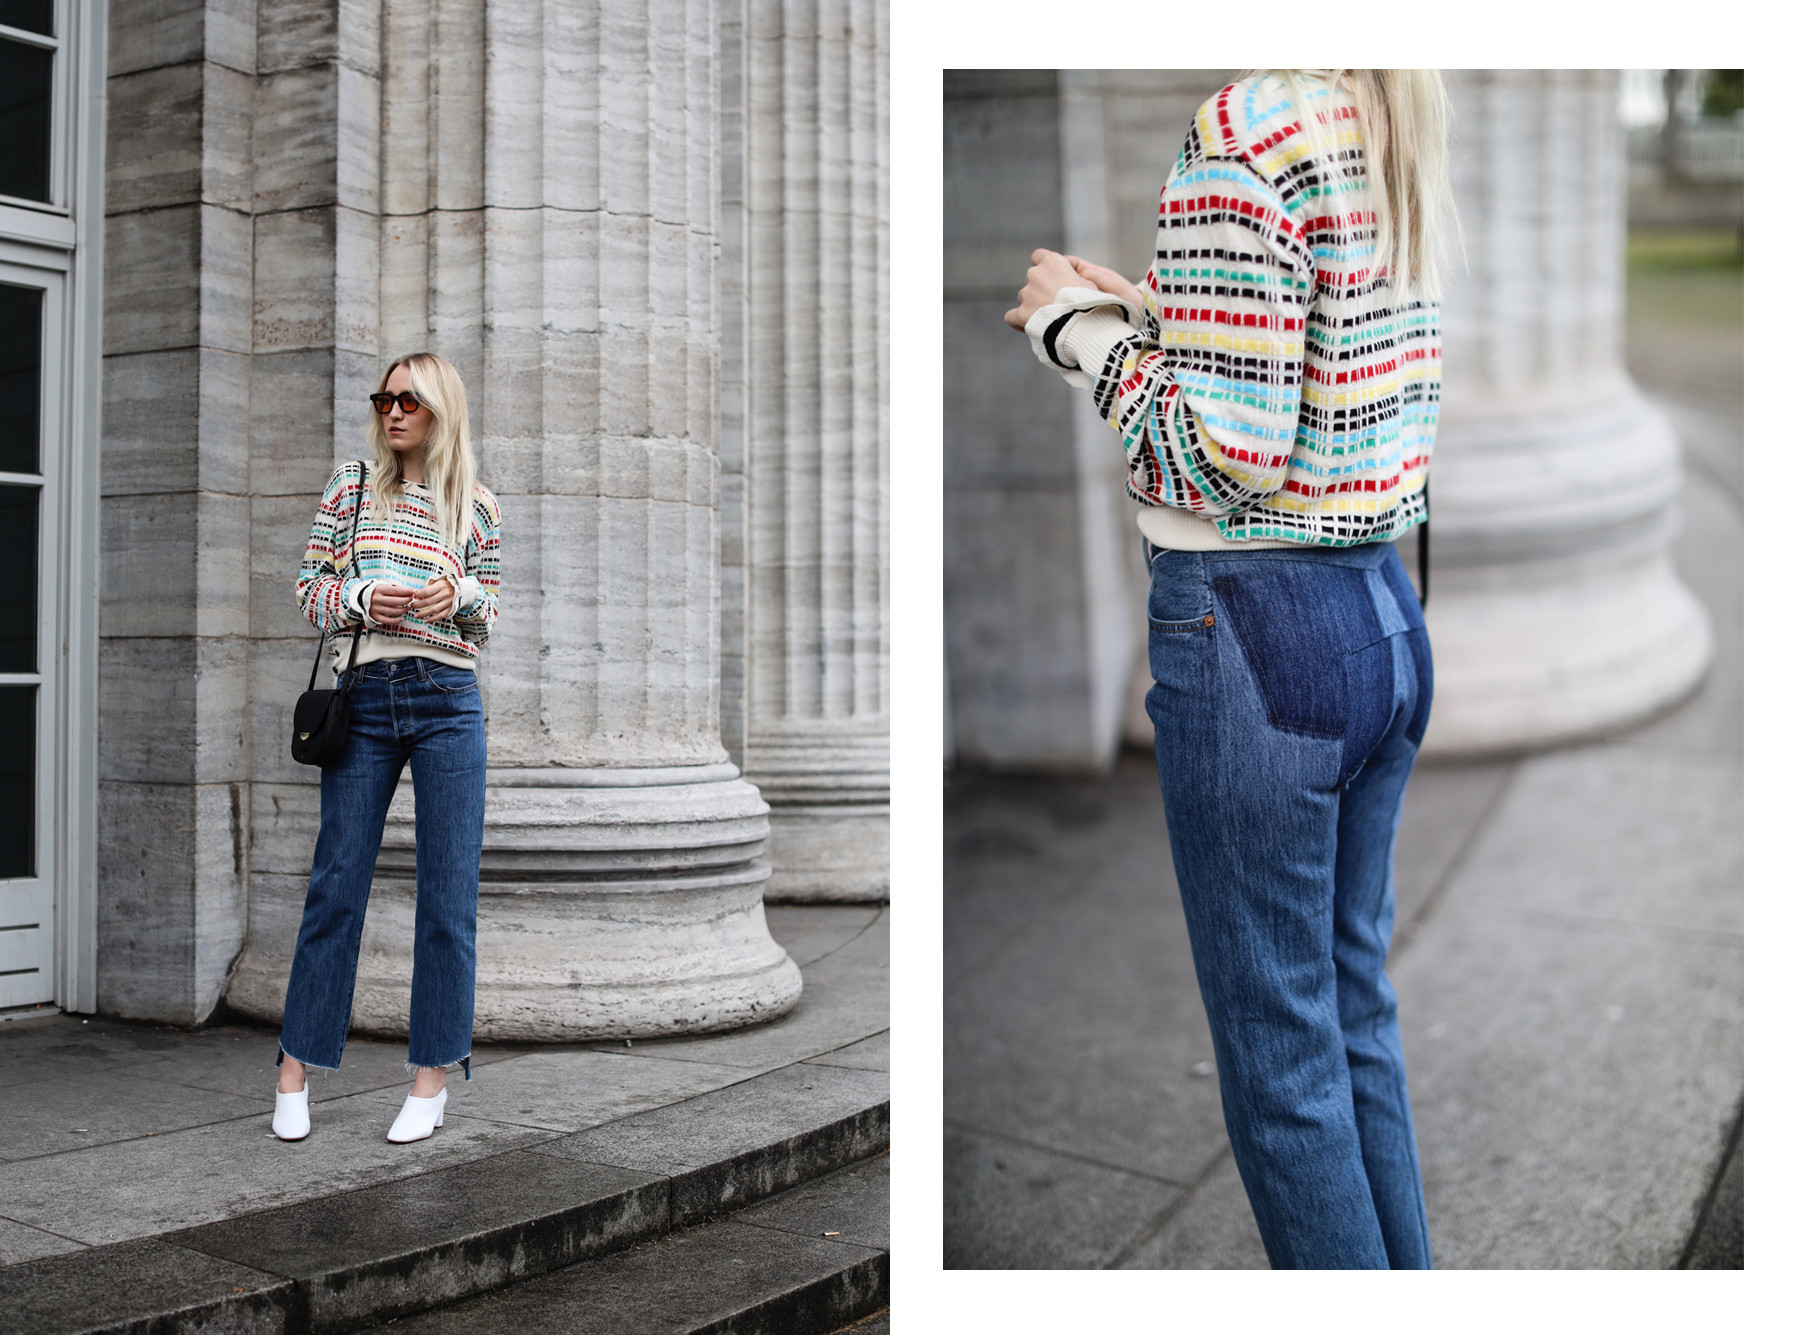 tyle-Shiver-Outfits-Vetements-Jeans-2